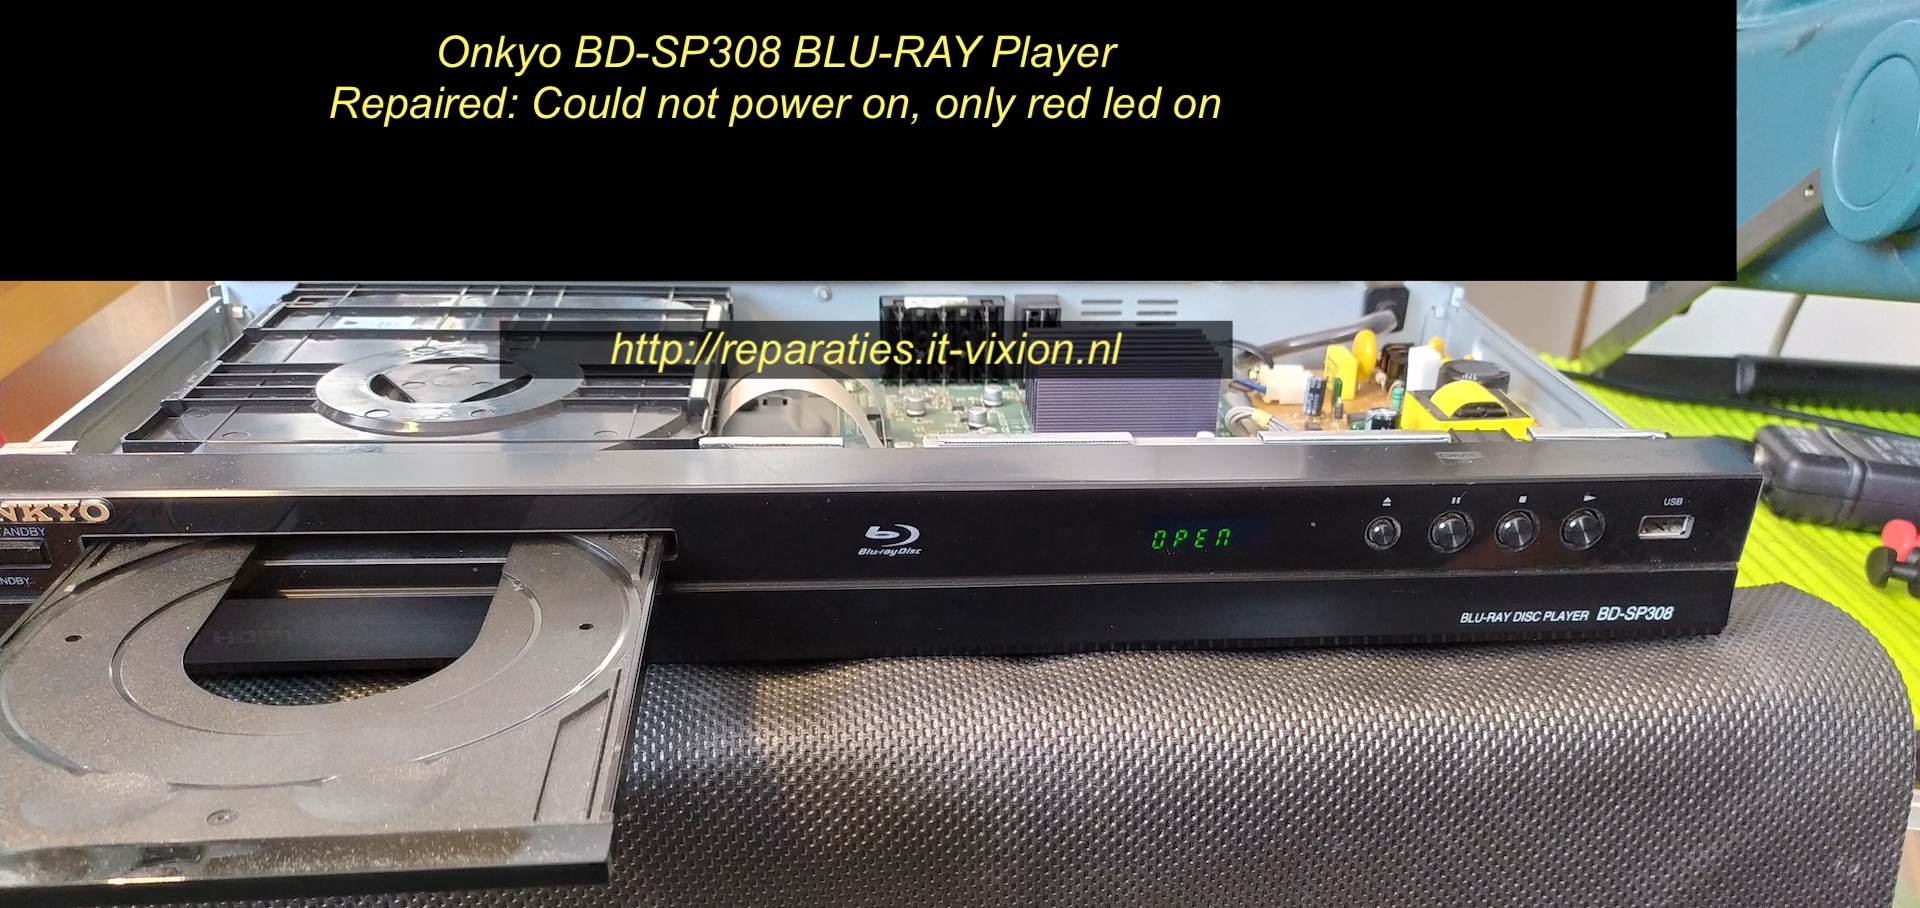 Onkyo bd-sp308 Blu-ray Player